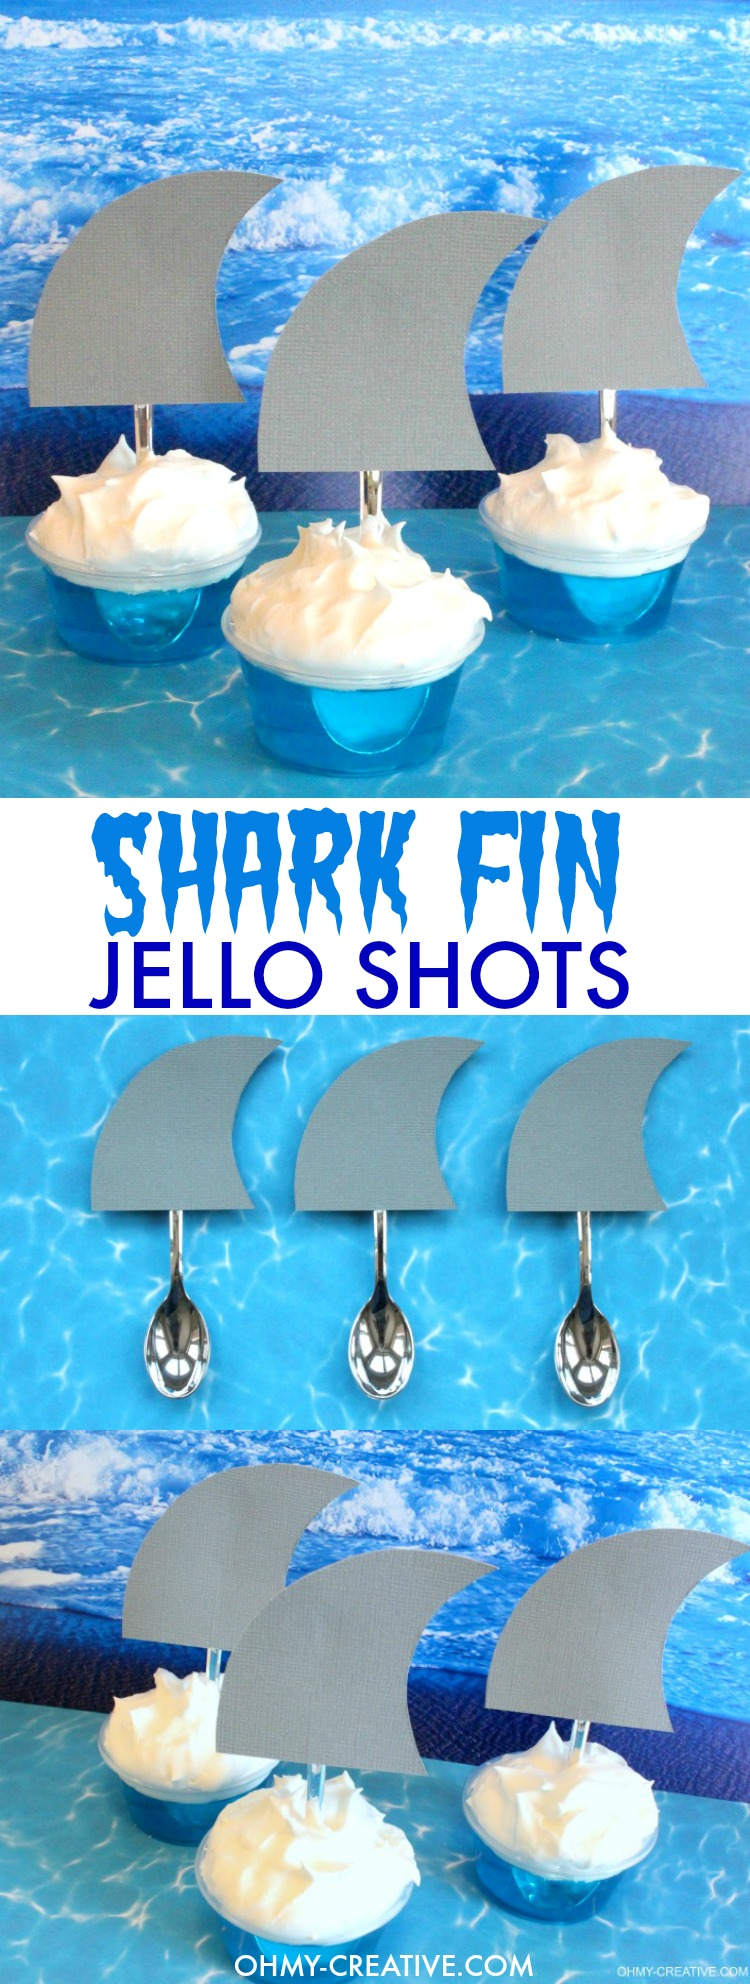 These SHARK FIN JELLO SHOTS are perfect for Shark Week, Jimmy Buffett fins shots, shark party dessert drinks and pool parties! Super easy to make and a creative party jello shot for summer! Fun Jello Shots | OHMY-CREATIVE.COM